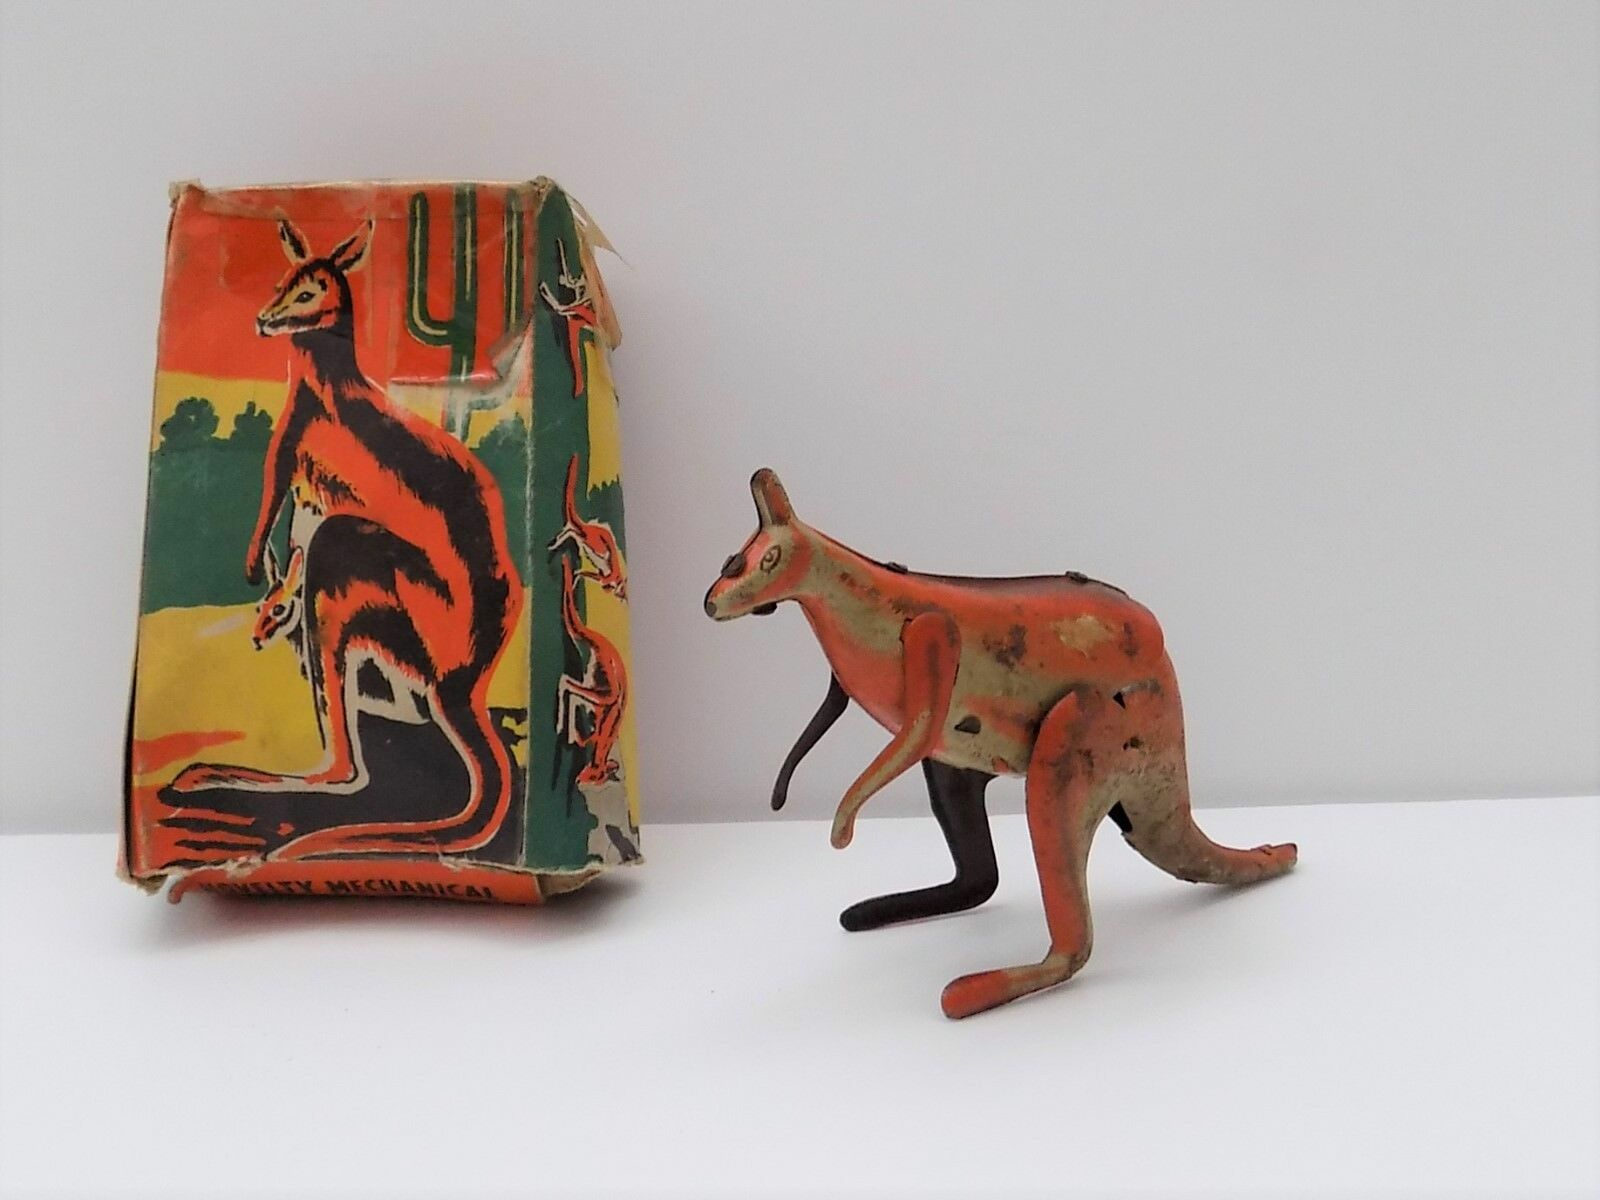 WELLS BRIMTOY NO 9 93 MECHANICAL KANGAROO BOXED VERY RARE BOXED LOFT FIND